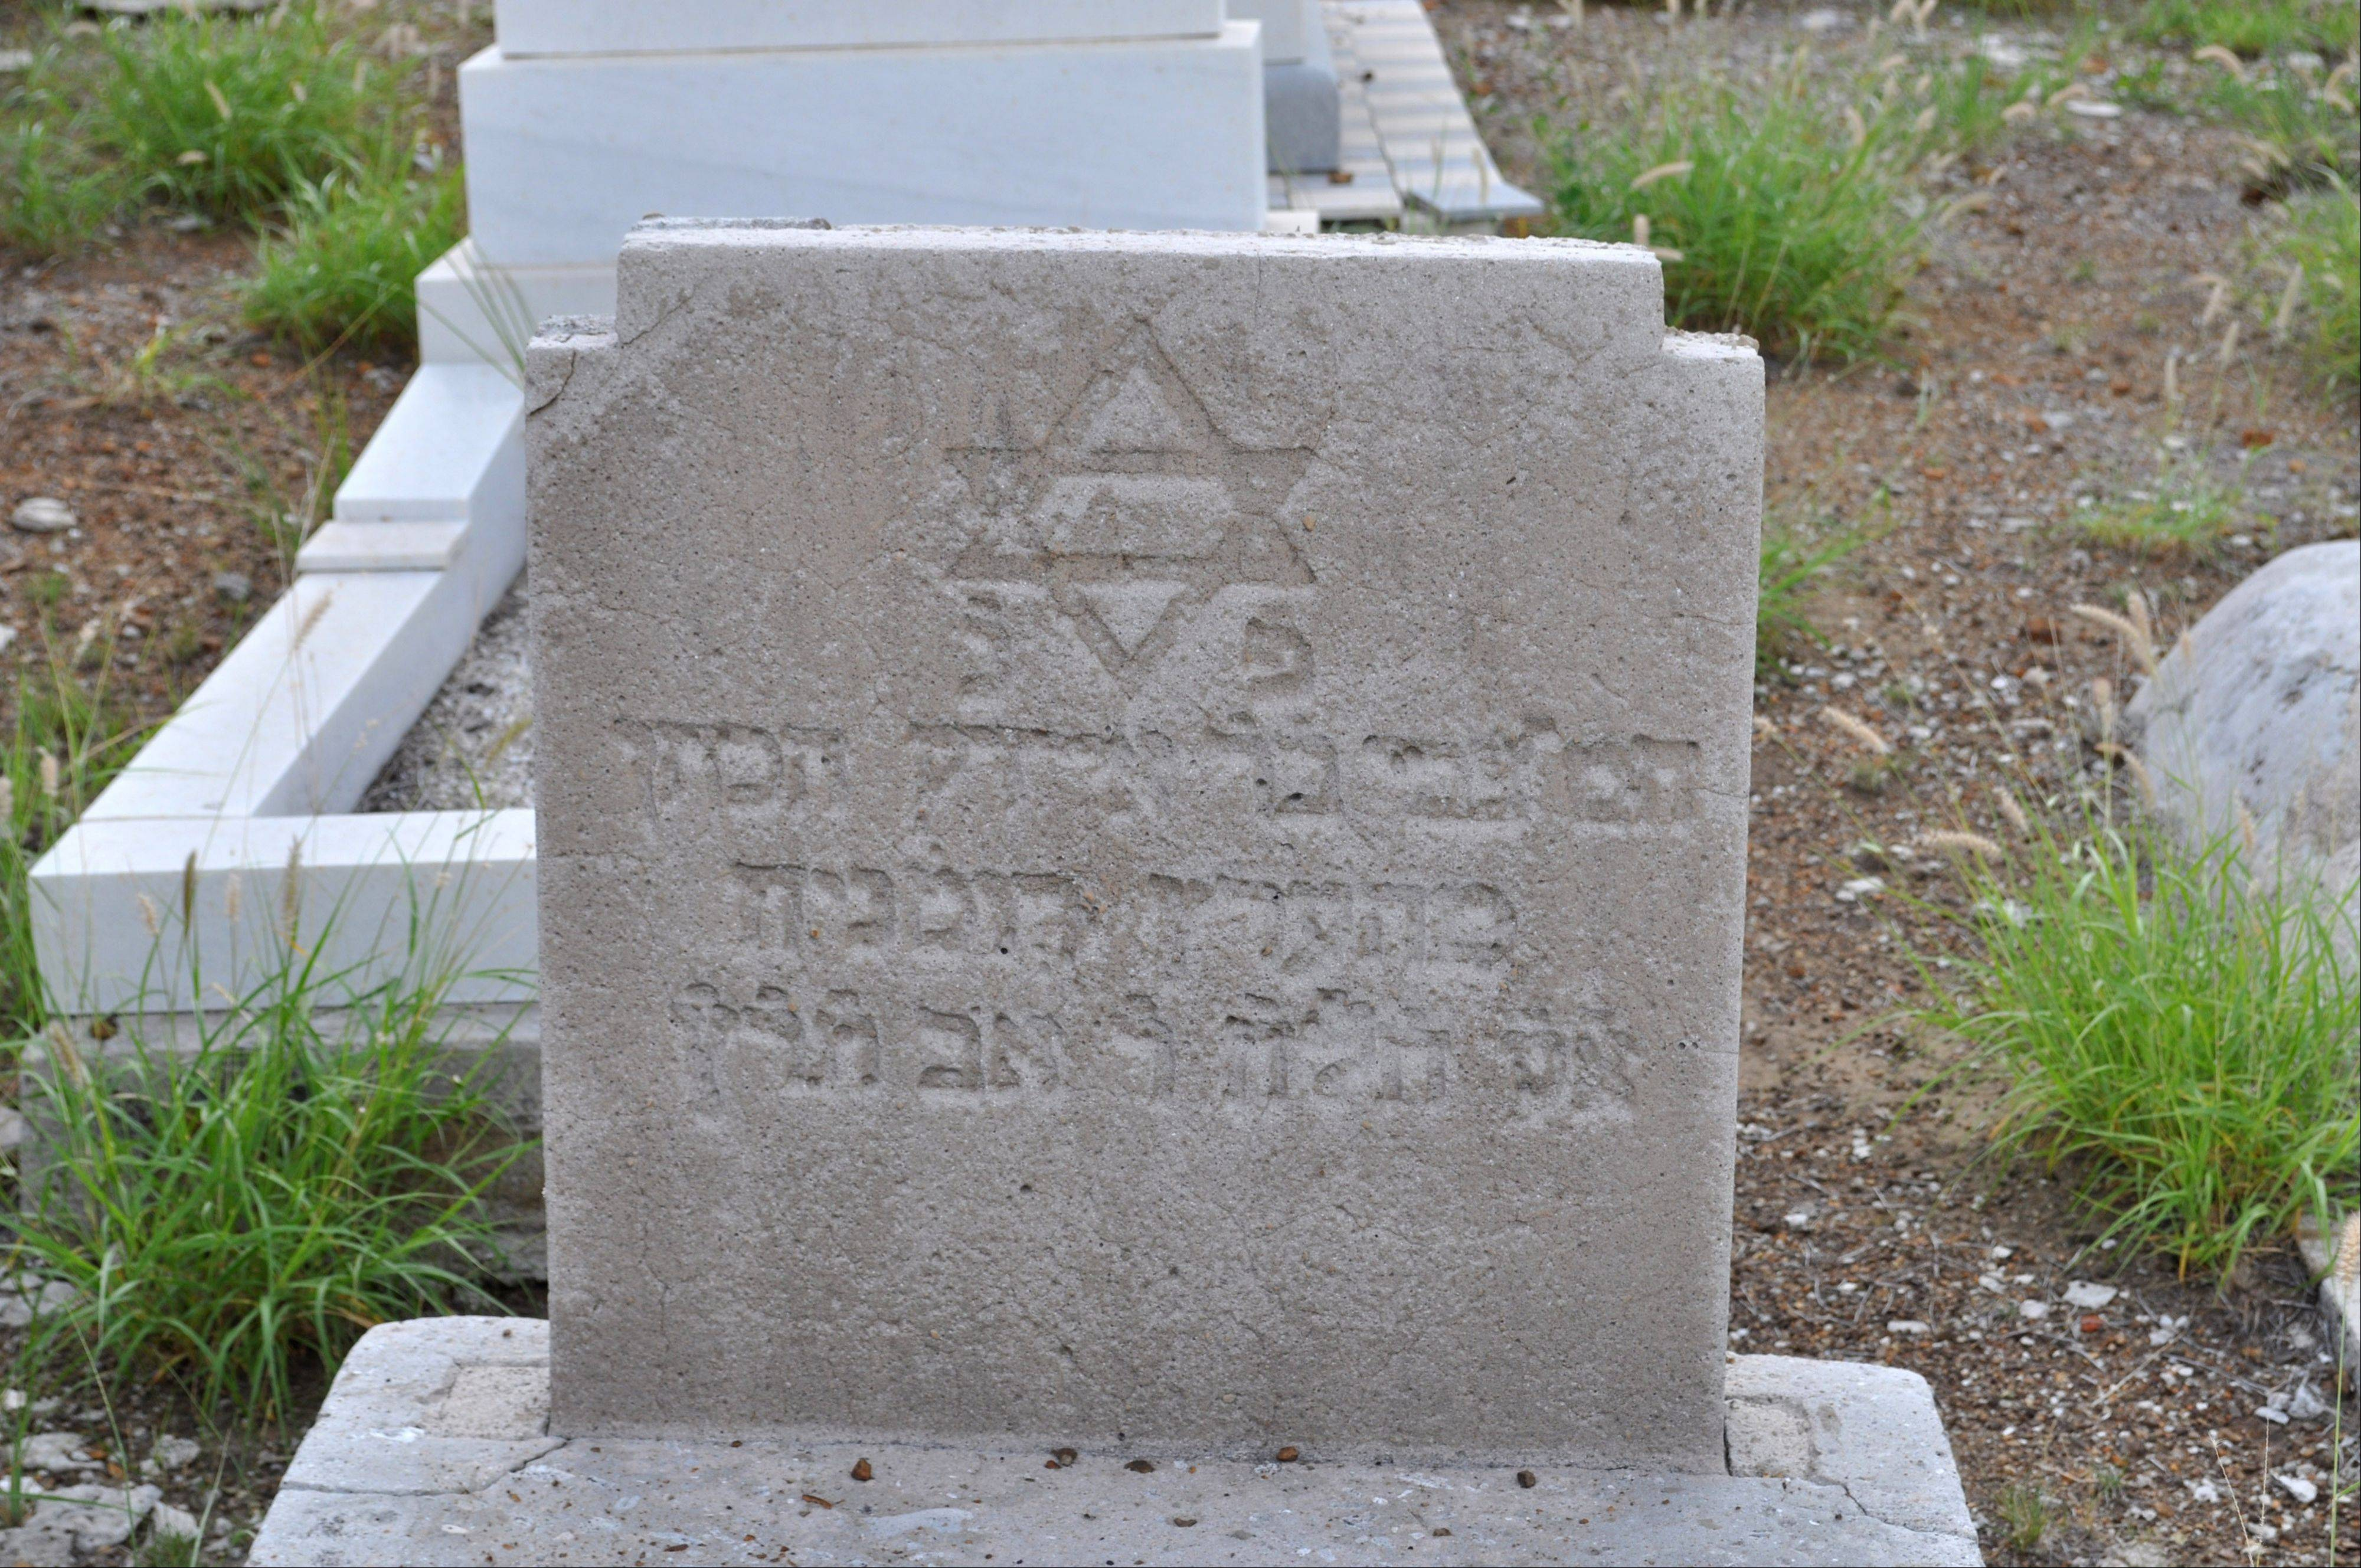 Beth Haim, believed to be one of the oldest Jewish cemeteries in the Western Hemisphere, was established in the 17th century in Curacao.